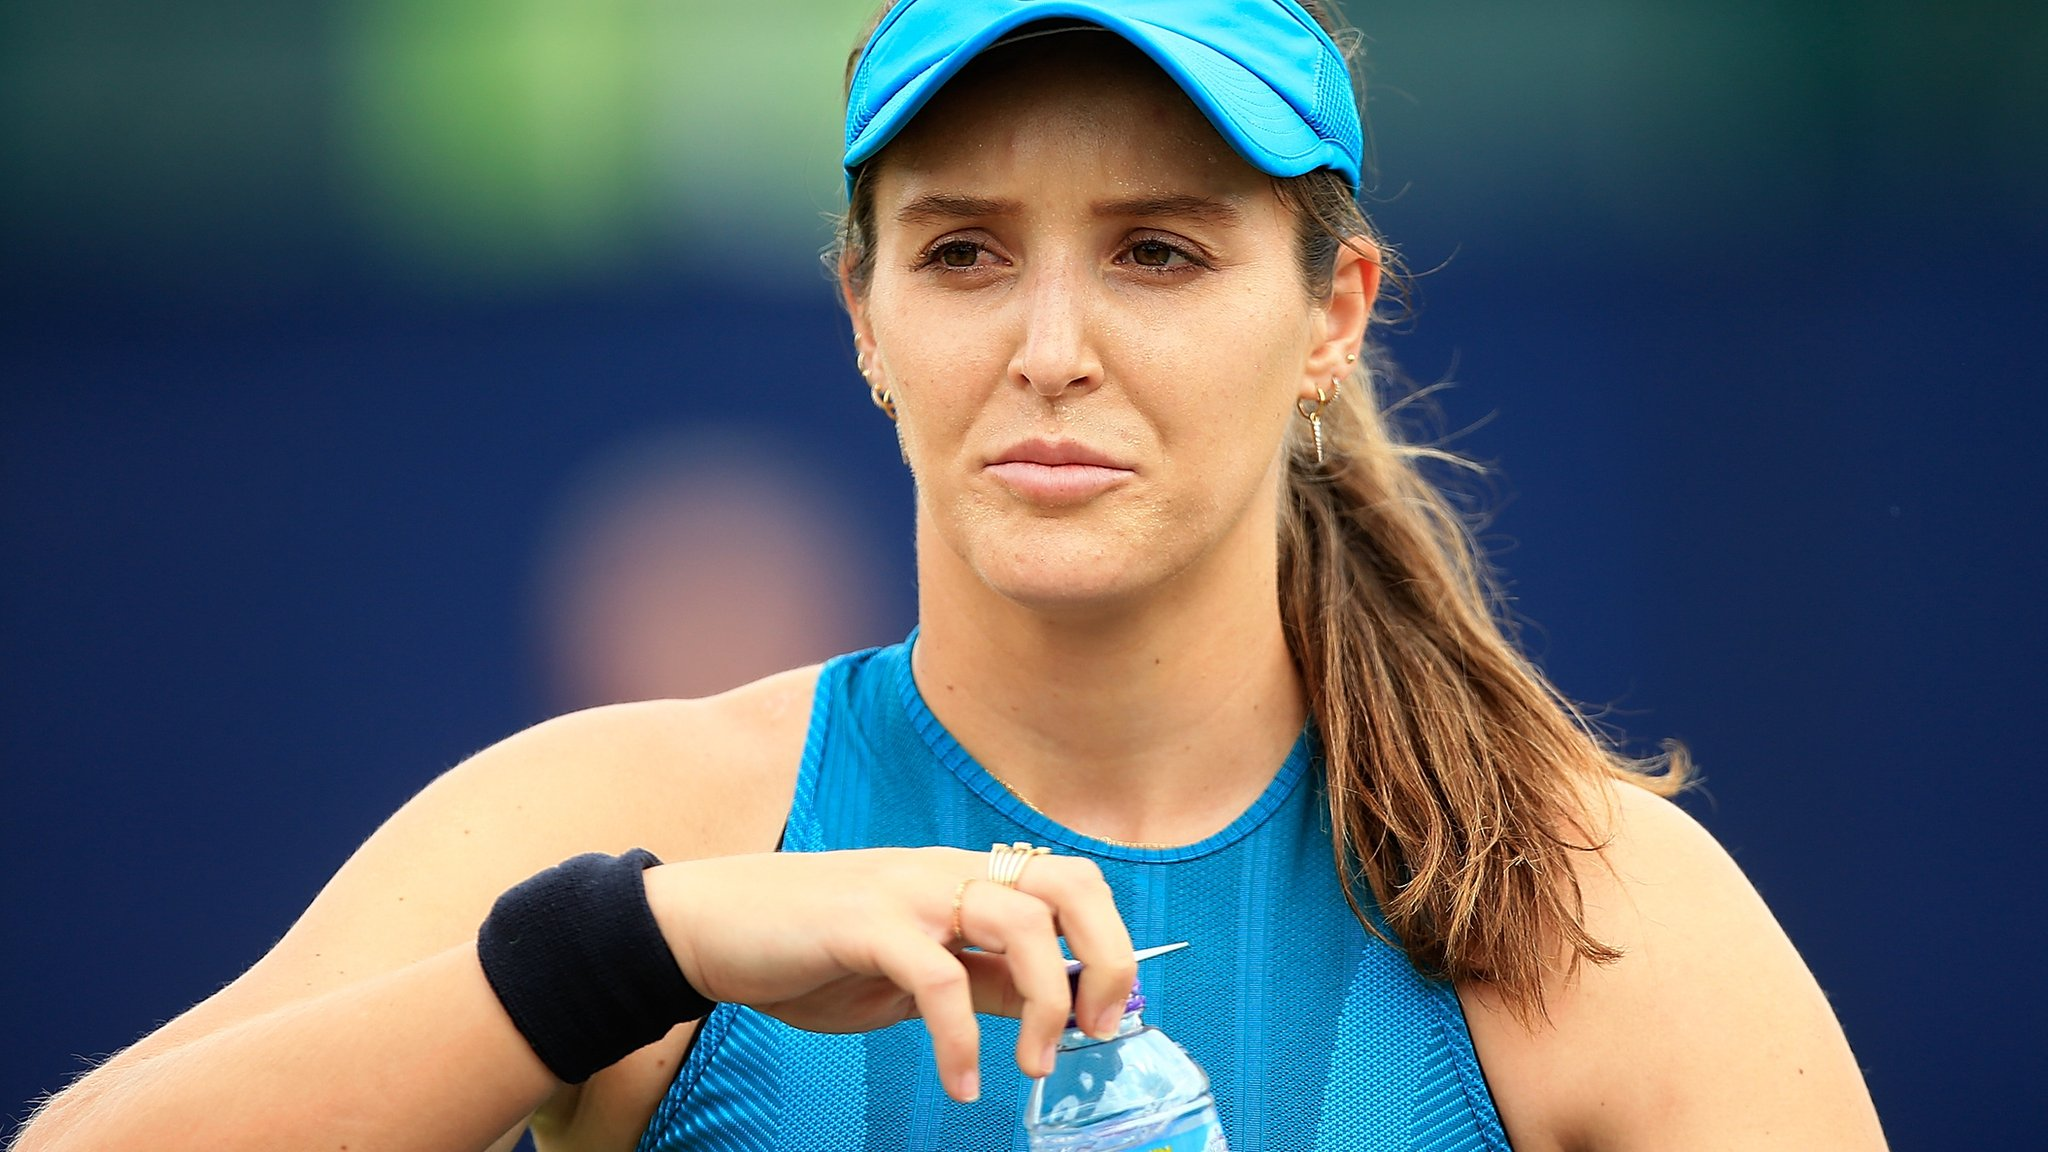 Laura Robson: Comeback from hip surgery 'better than expected'